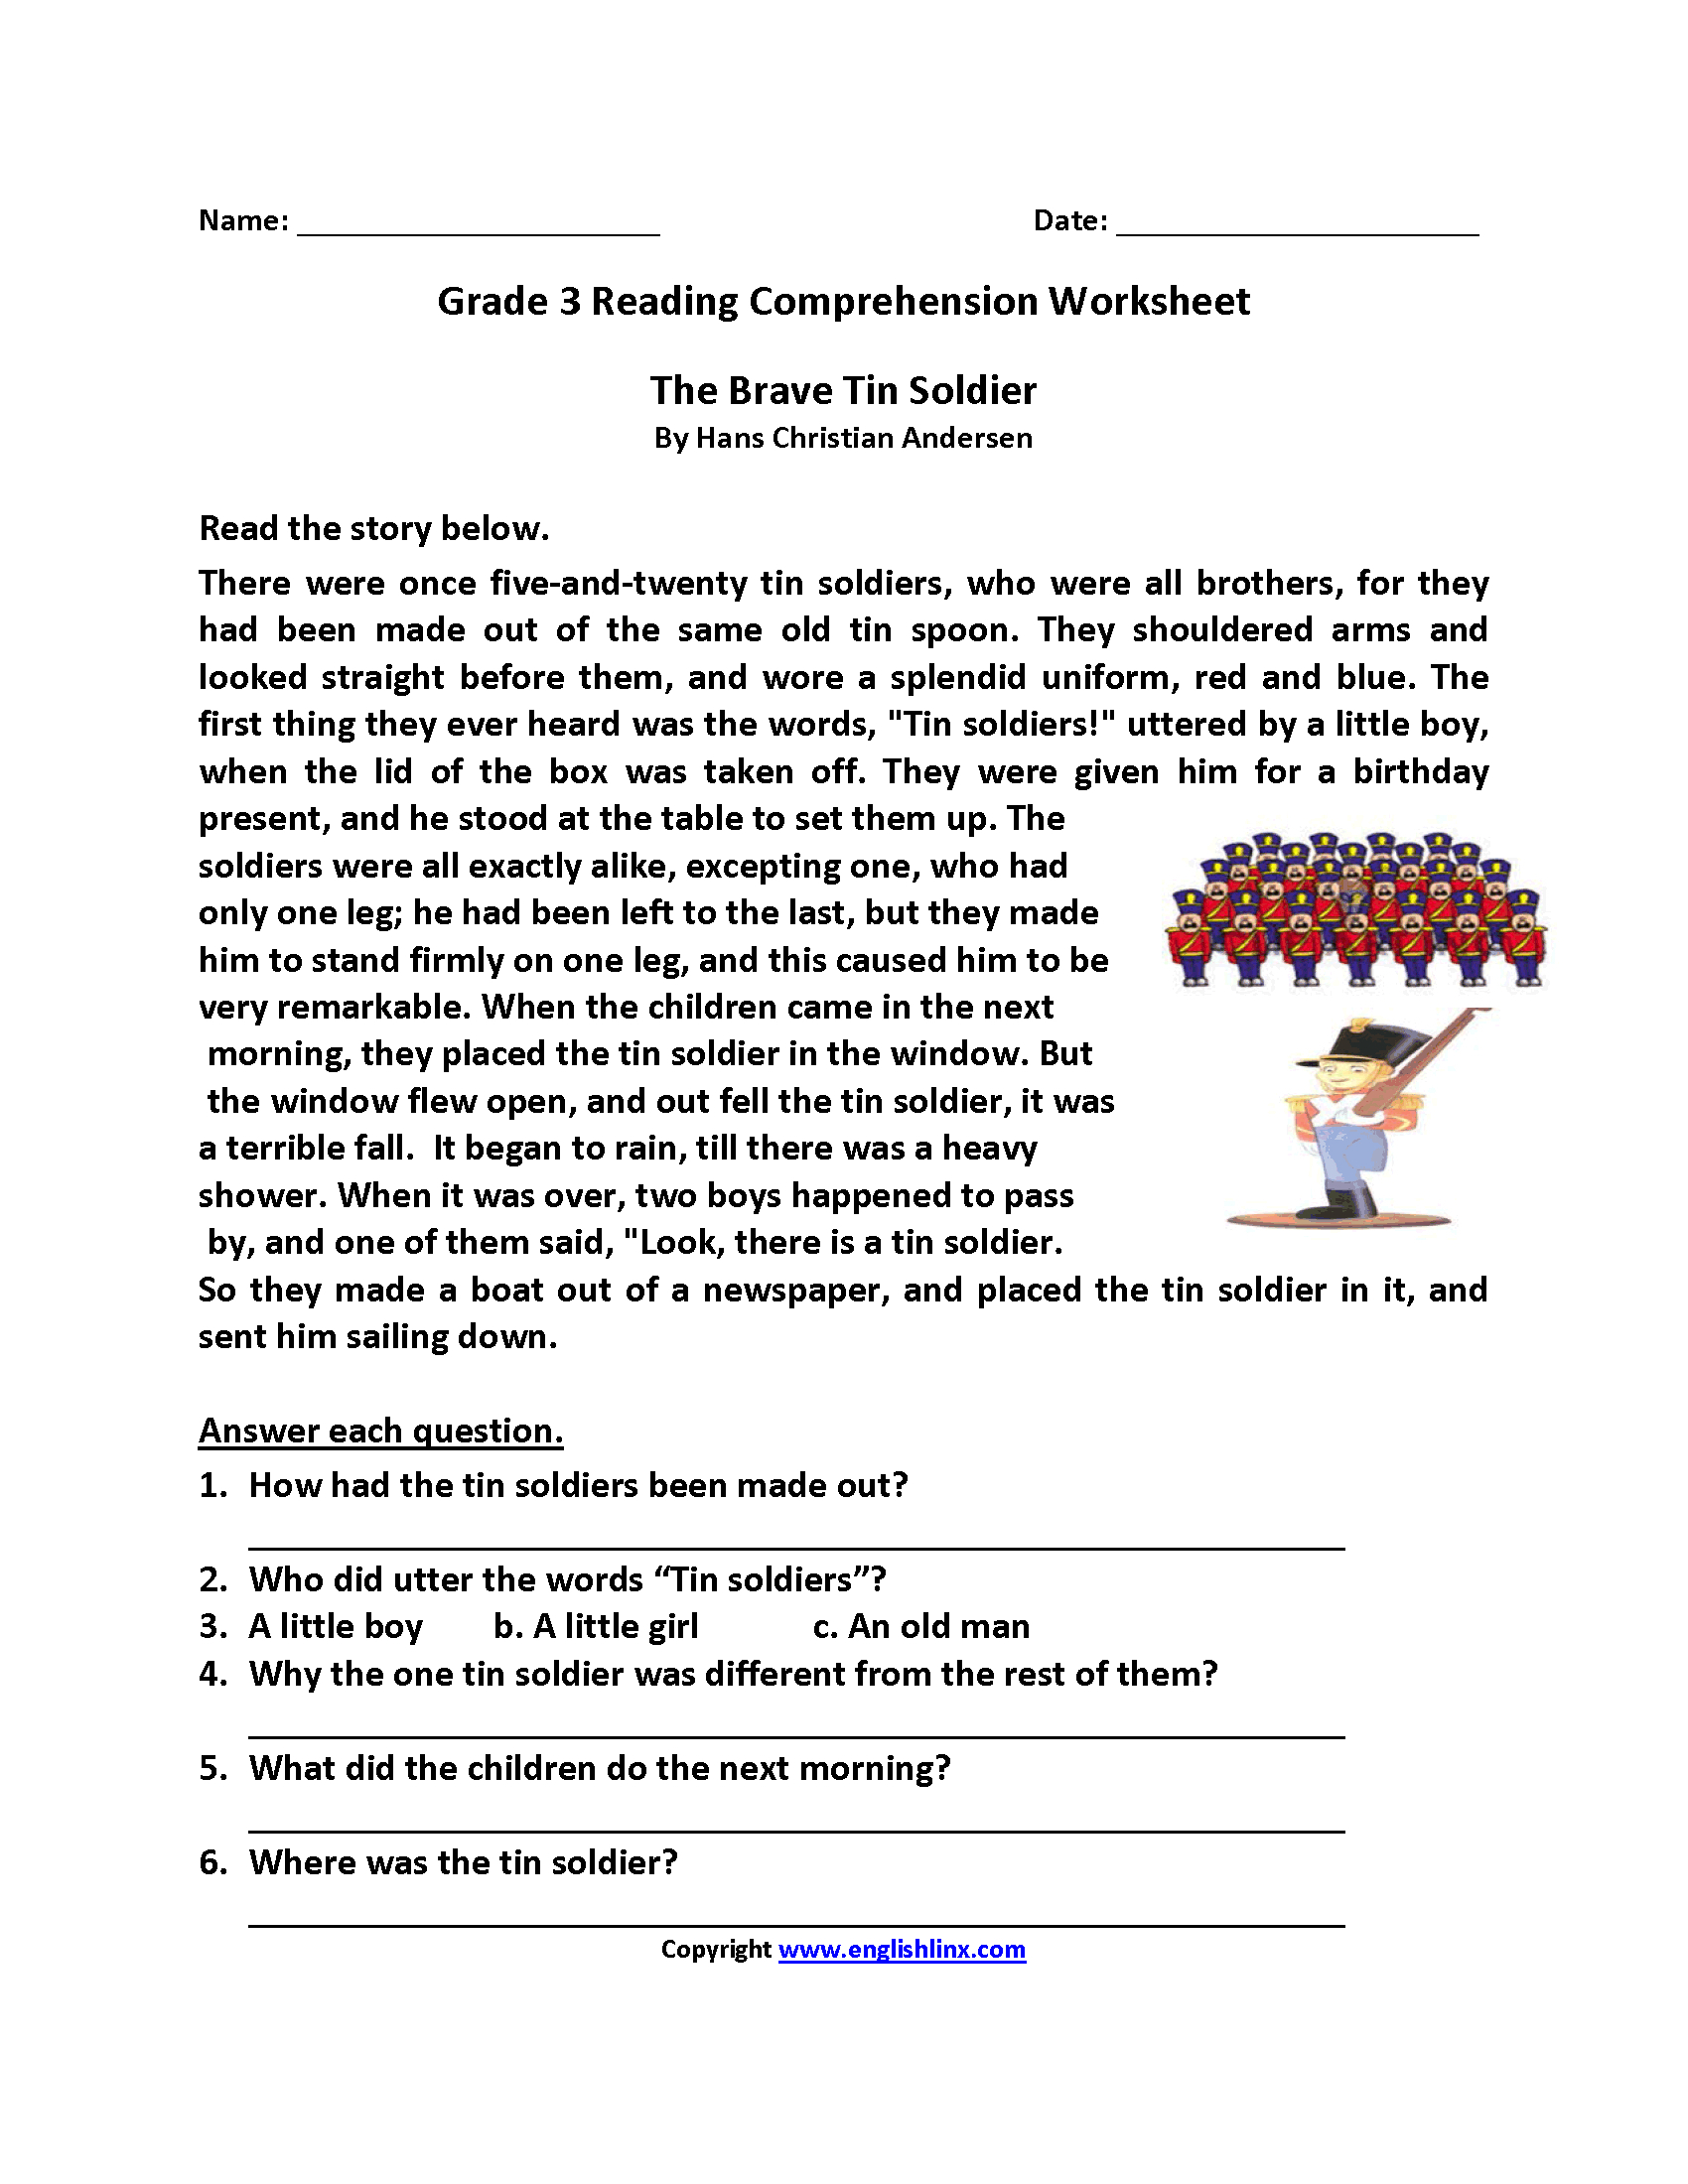 Free Printable Reading Comprehension Worksheets 3Rd Grade For Free | Free Printable 3Rd Grade Reading Worksheets